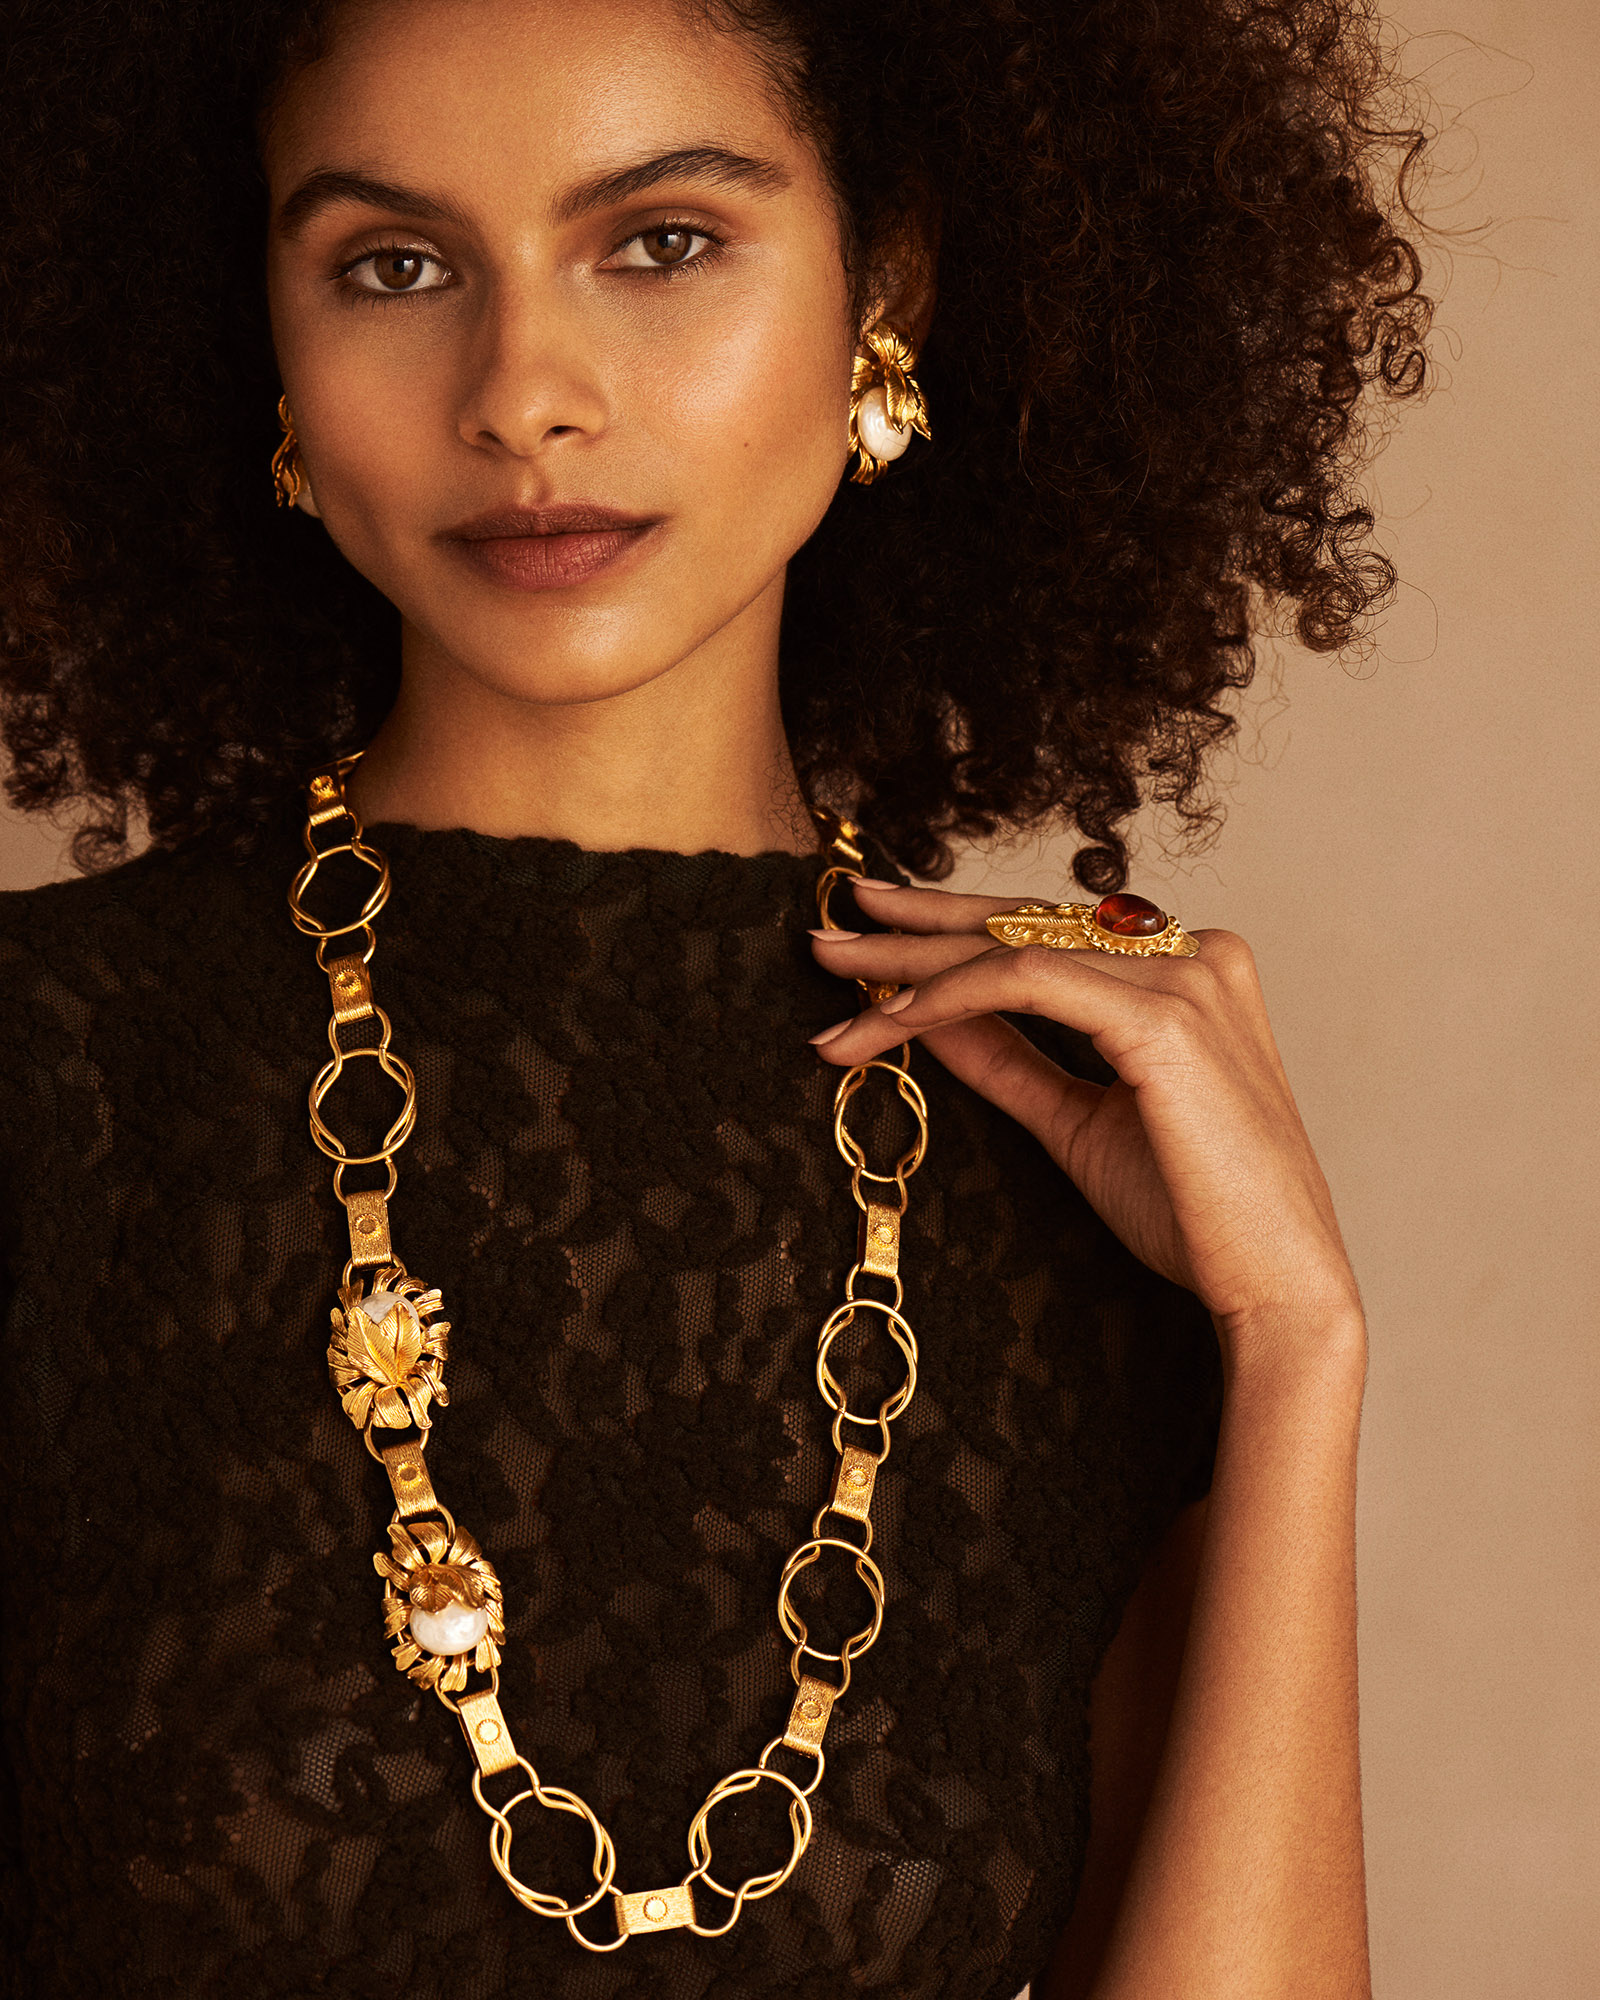 Moon Flower Belt/Necklace - Gold by Sonia Petroff on curated-crowd.com